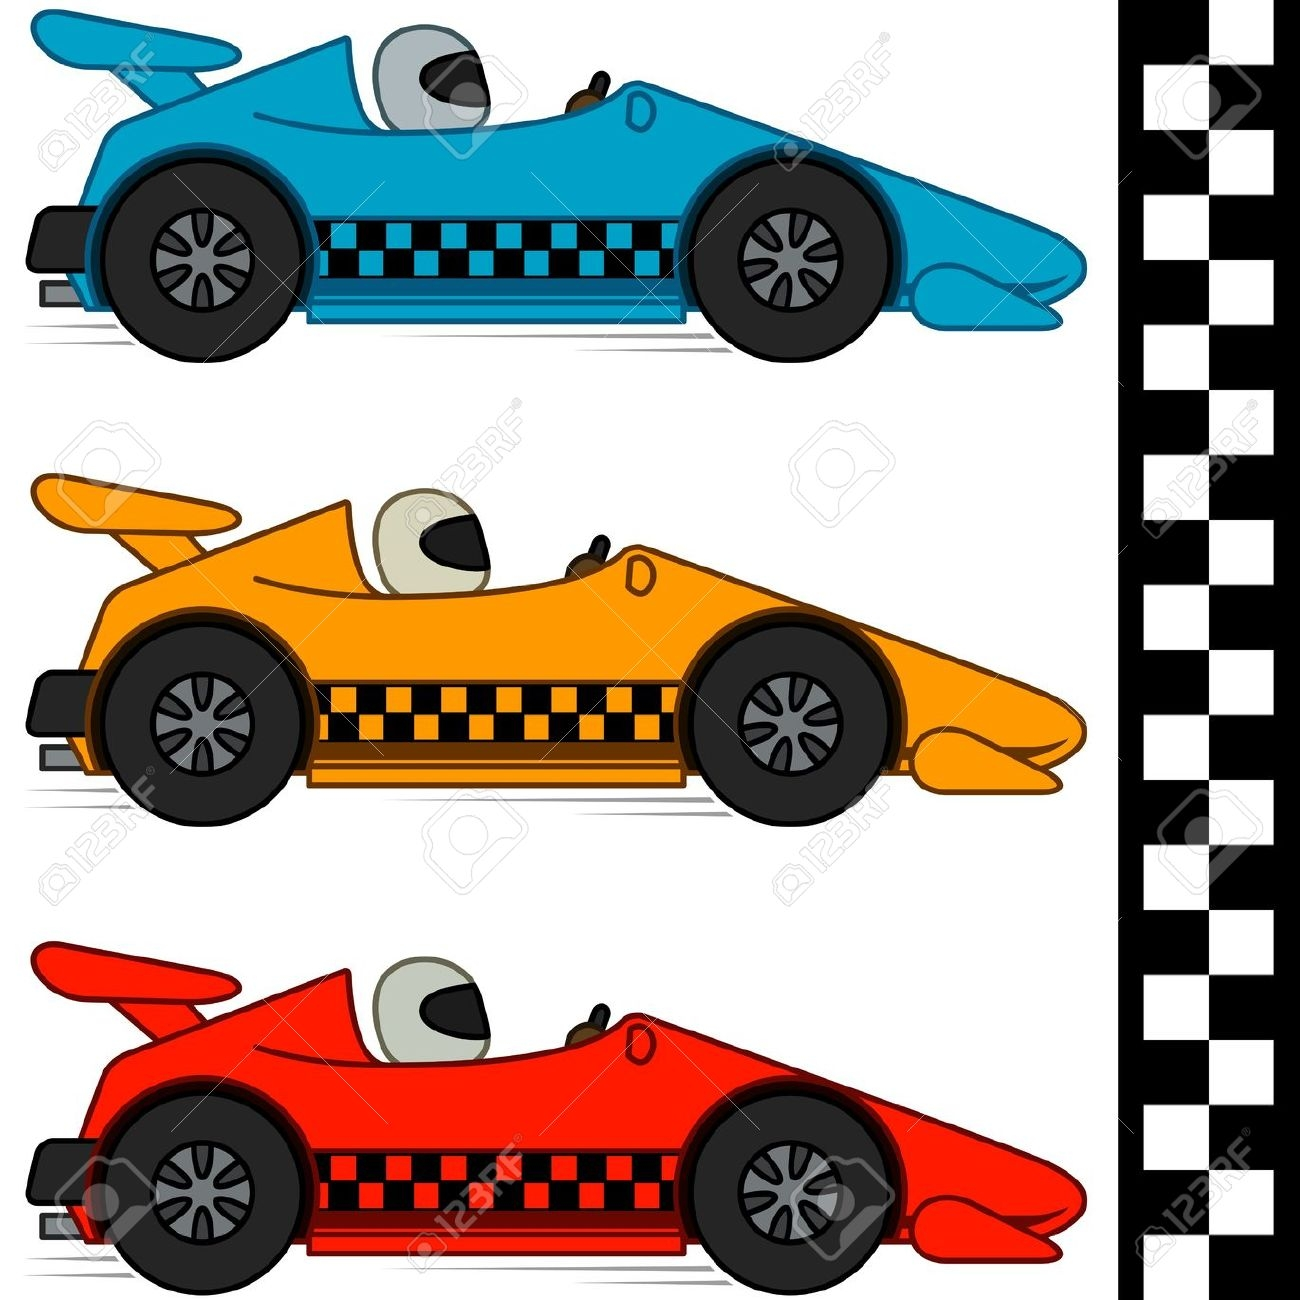 68+ Clipart Race Car.